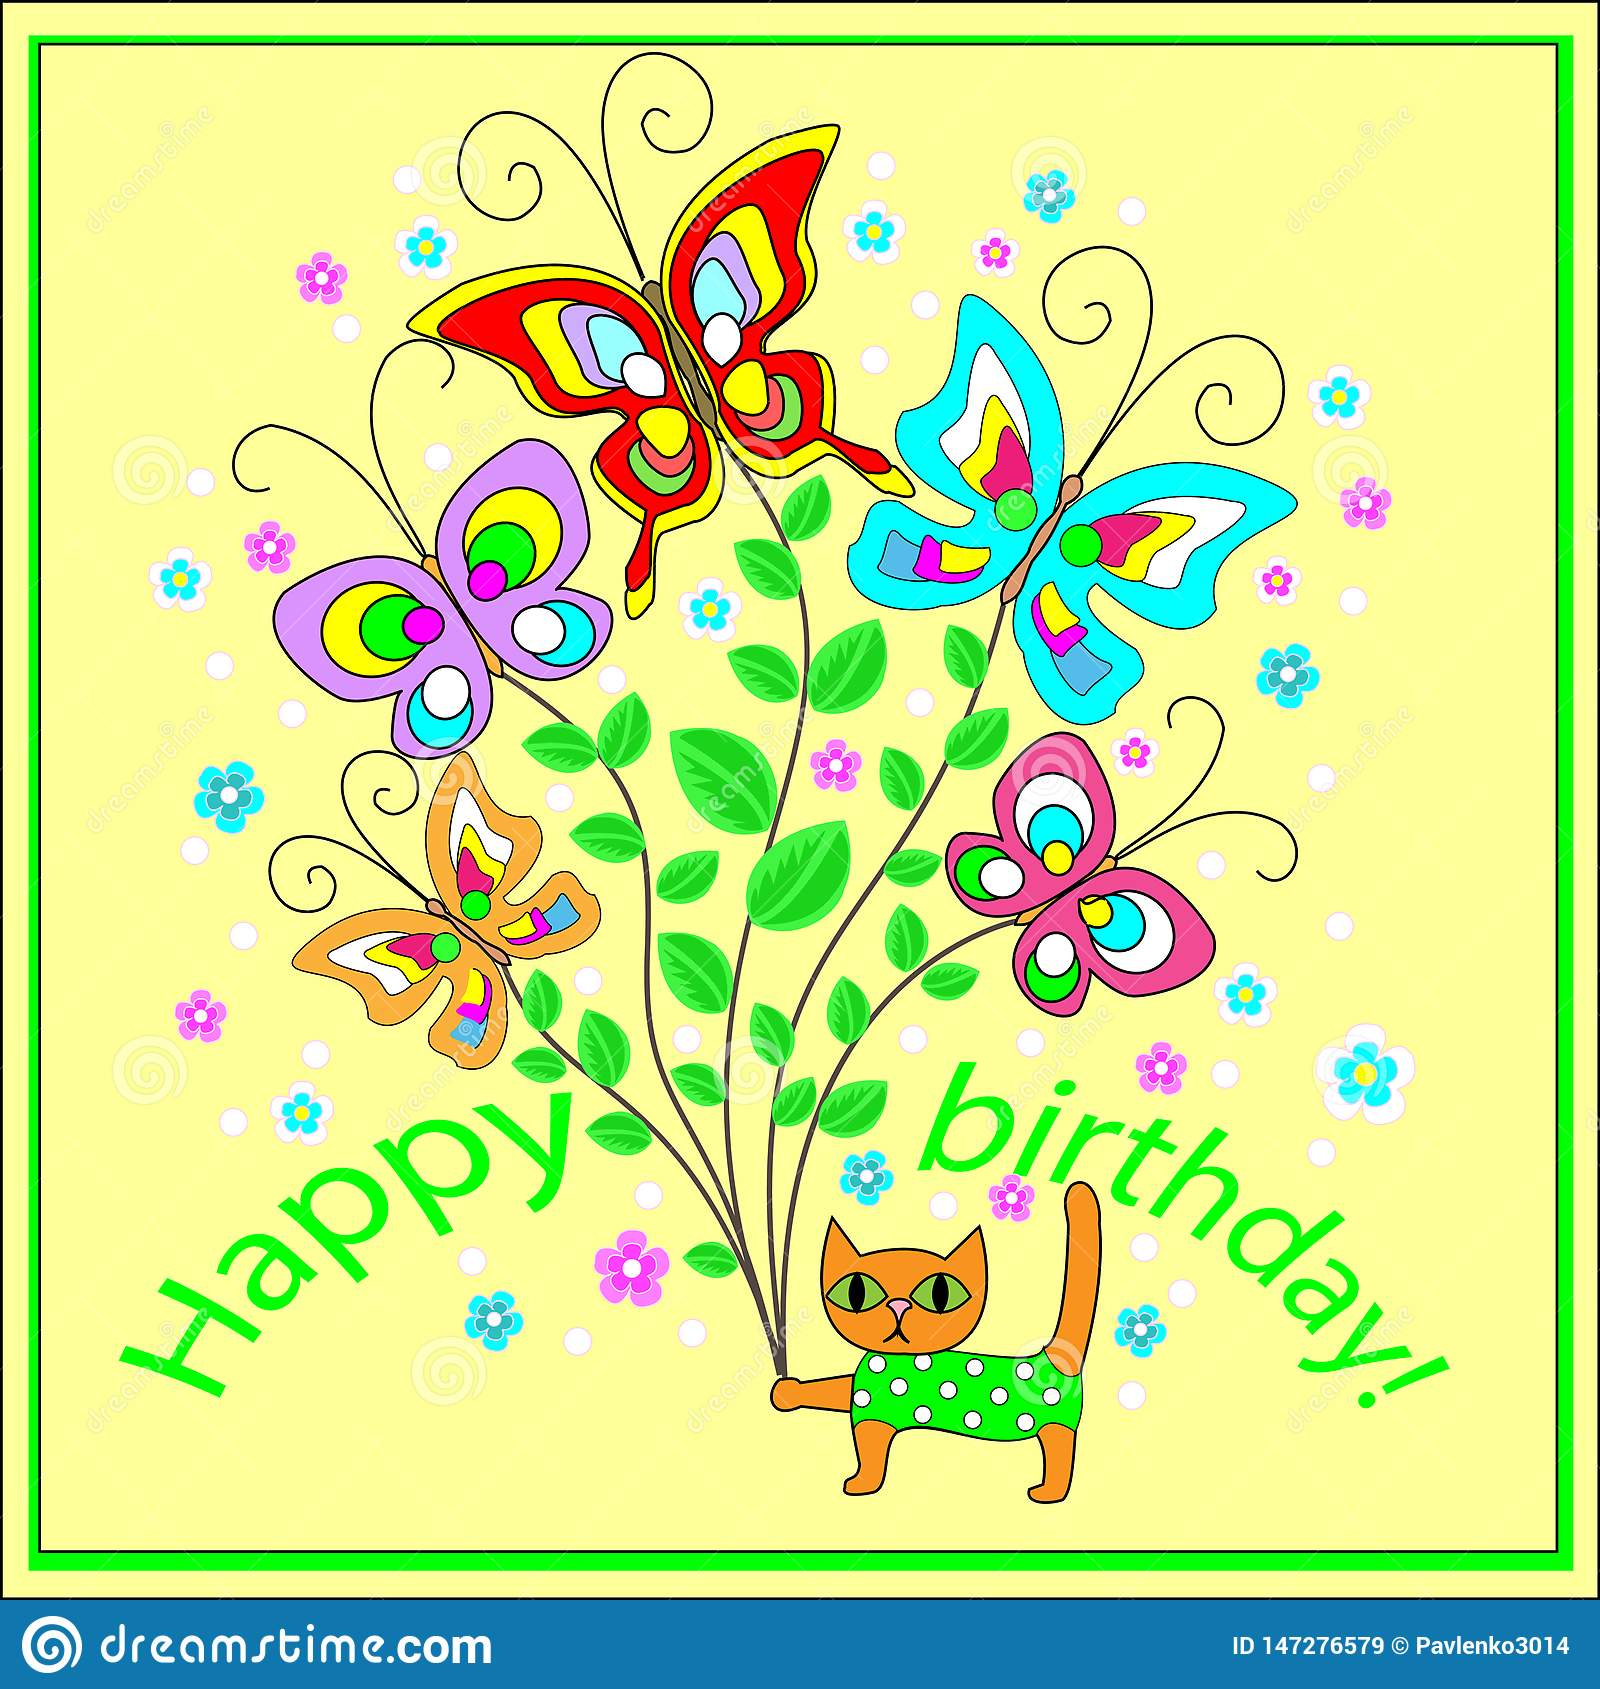 Original Greeting Card With A Happy Birthday Bouquet Of Merry Fluttering Butterflies Creating